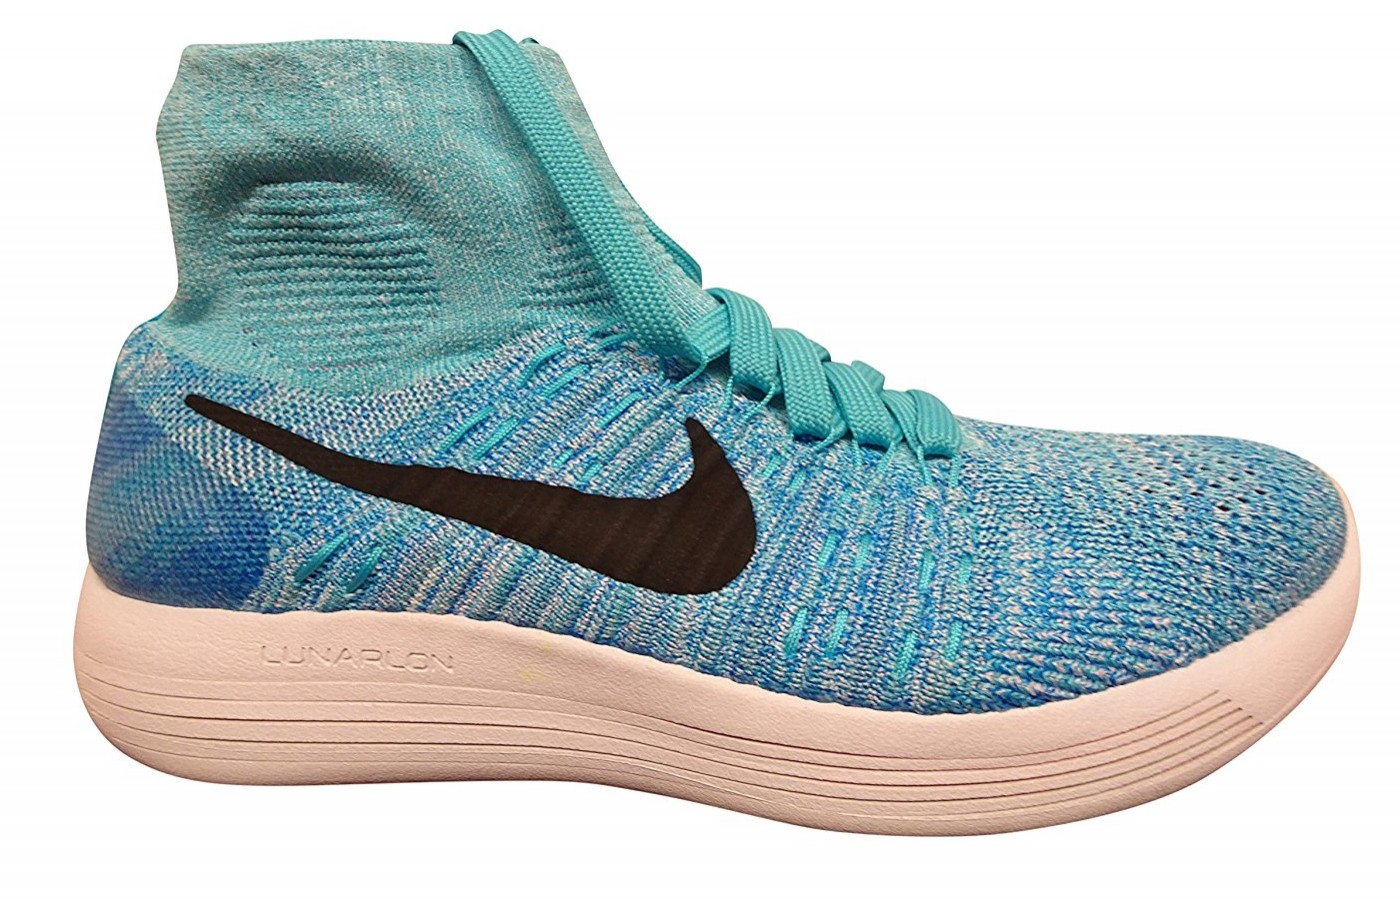 Lunarepic blue colorway